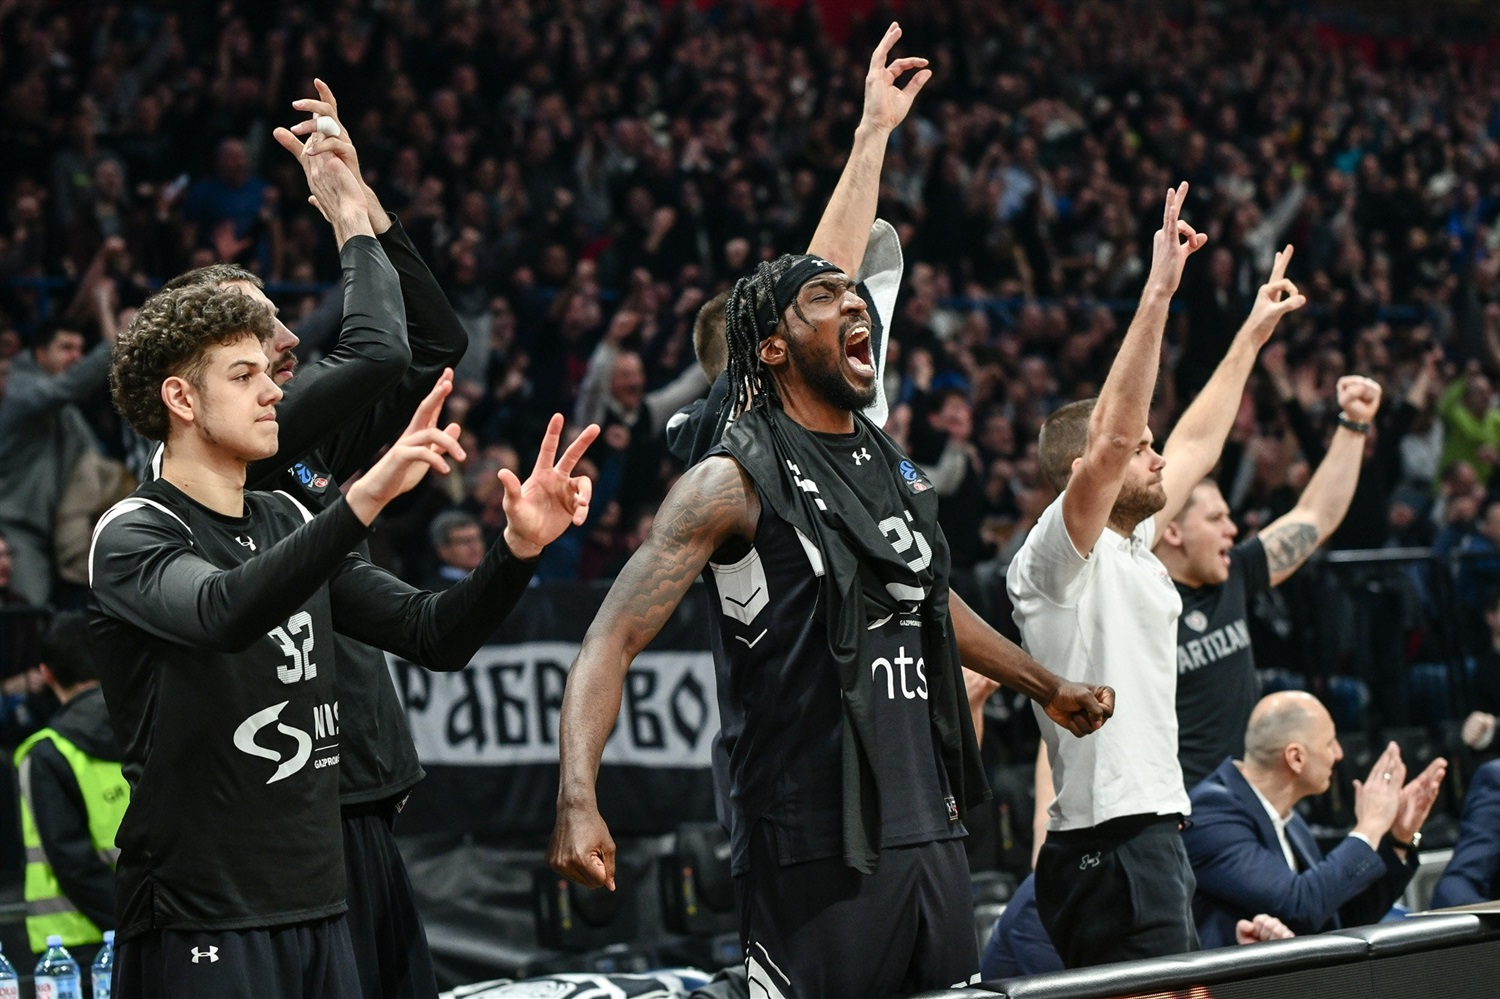 Rashawn Thomas celebrates - Partizan NIS Belgrade (photo Dragana Stjepanovic) - EC19